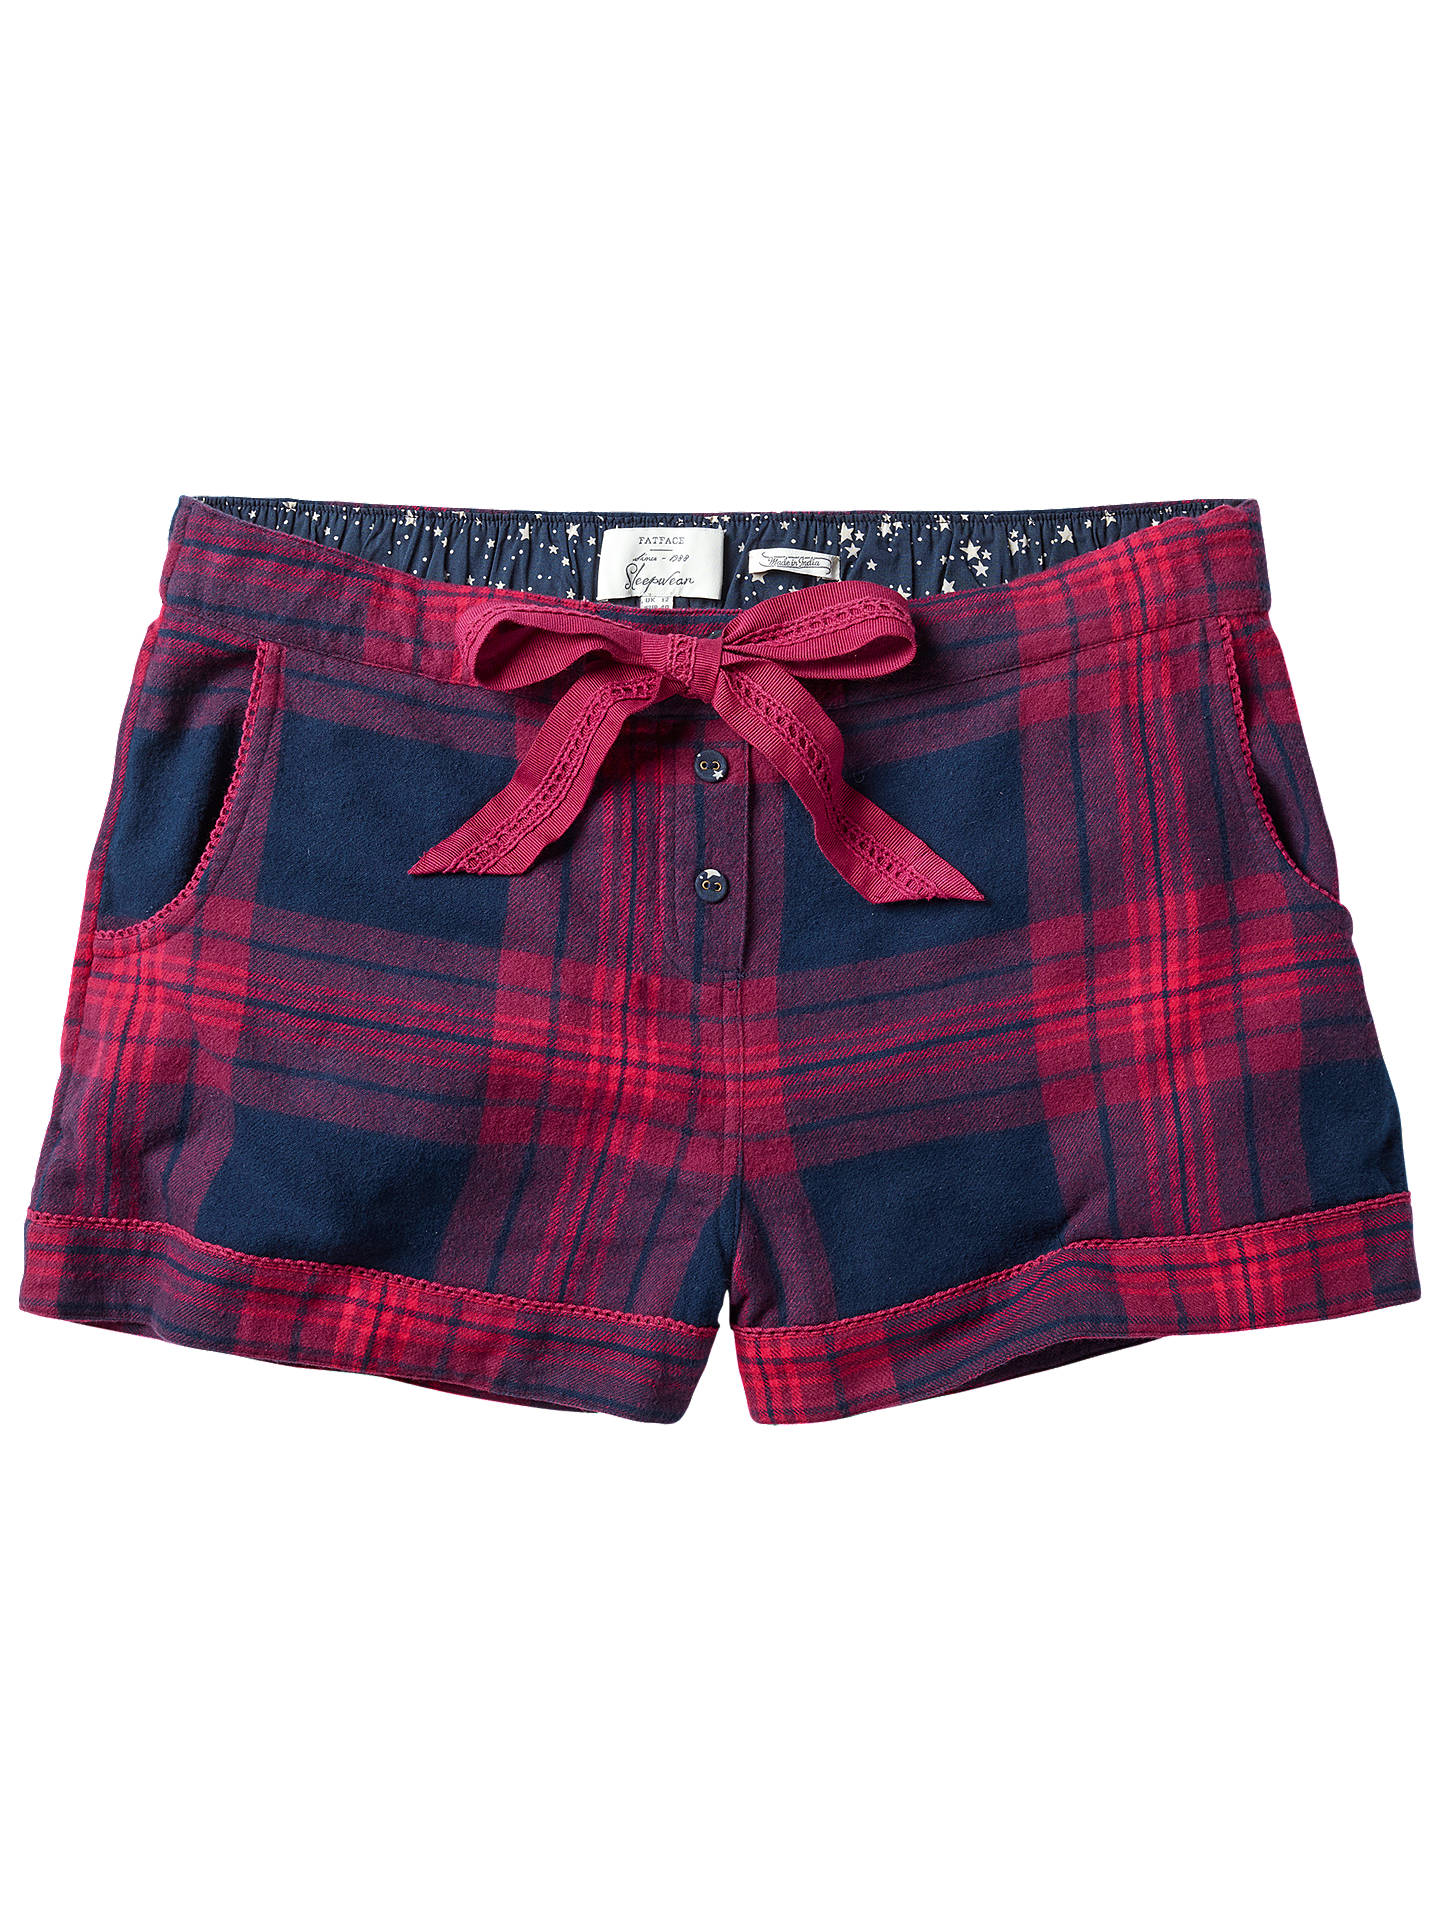 BuyFat Face Festive Check Shorts, Navy, 6 Online at johnlewis.com